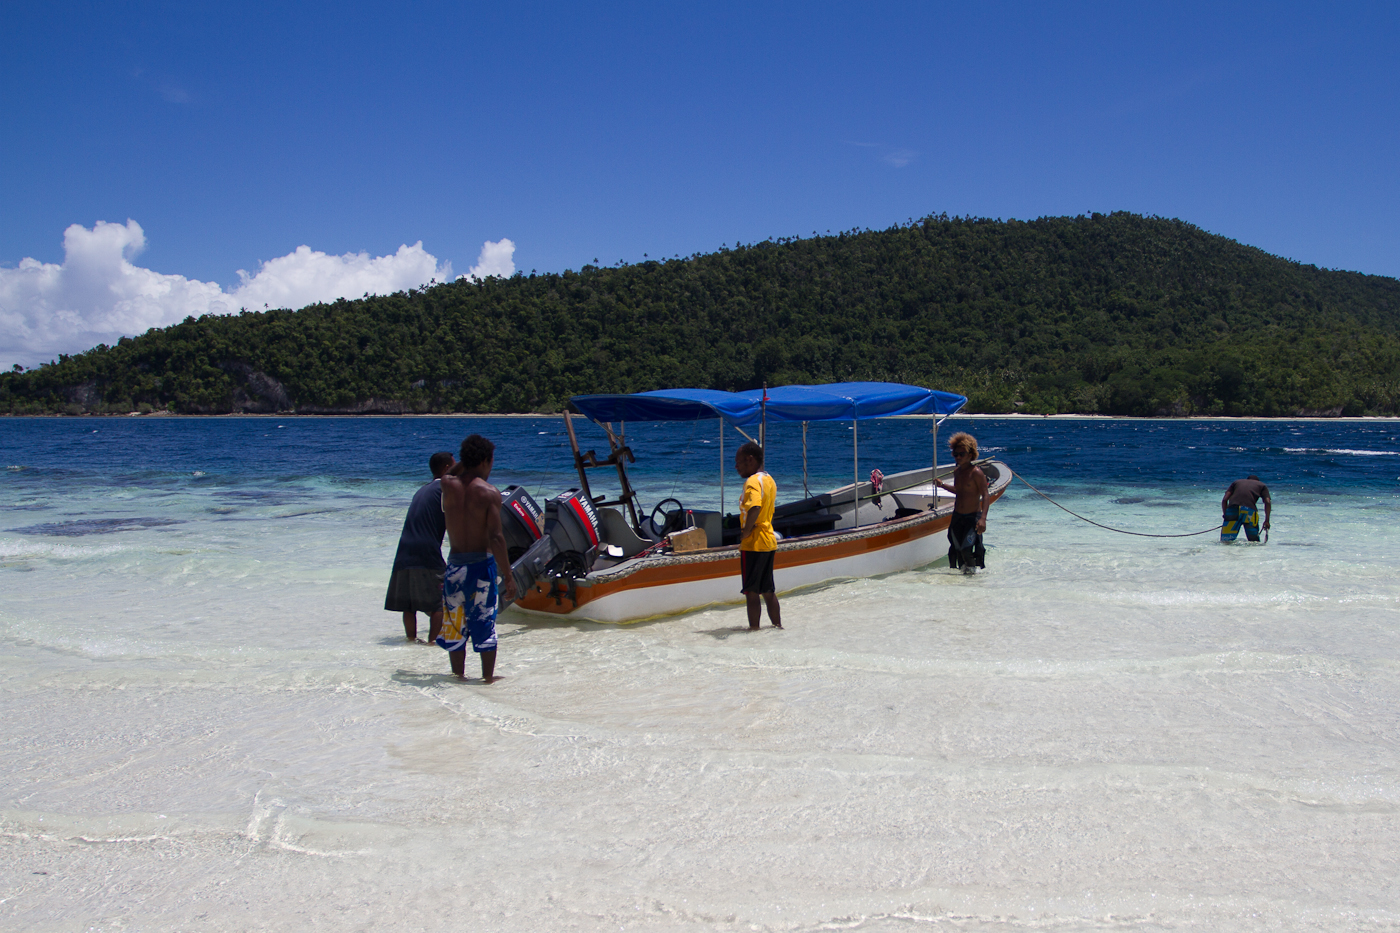 Our snorkeling boat, parked at the sandbar.